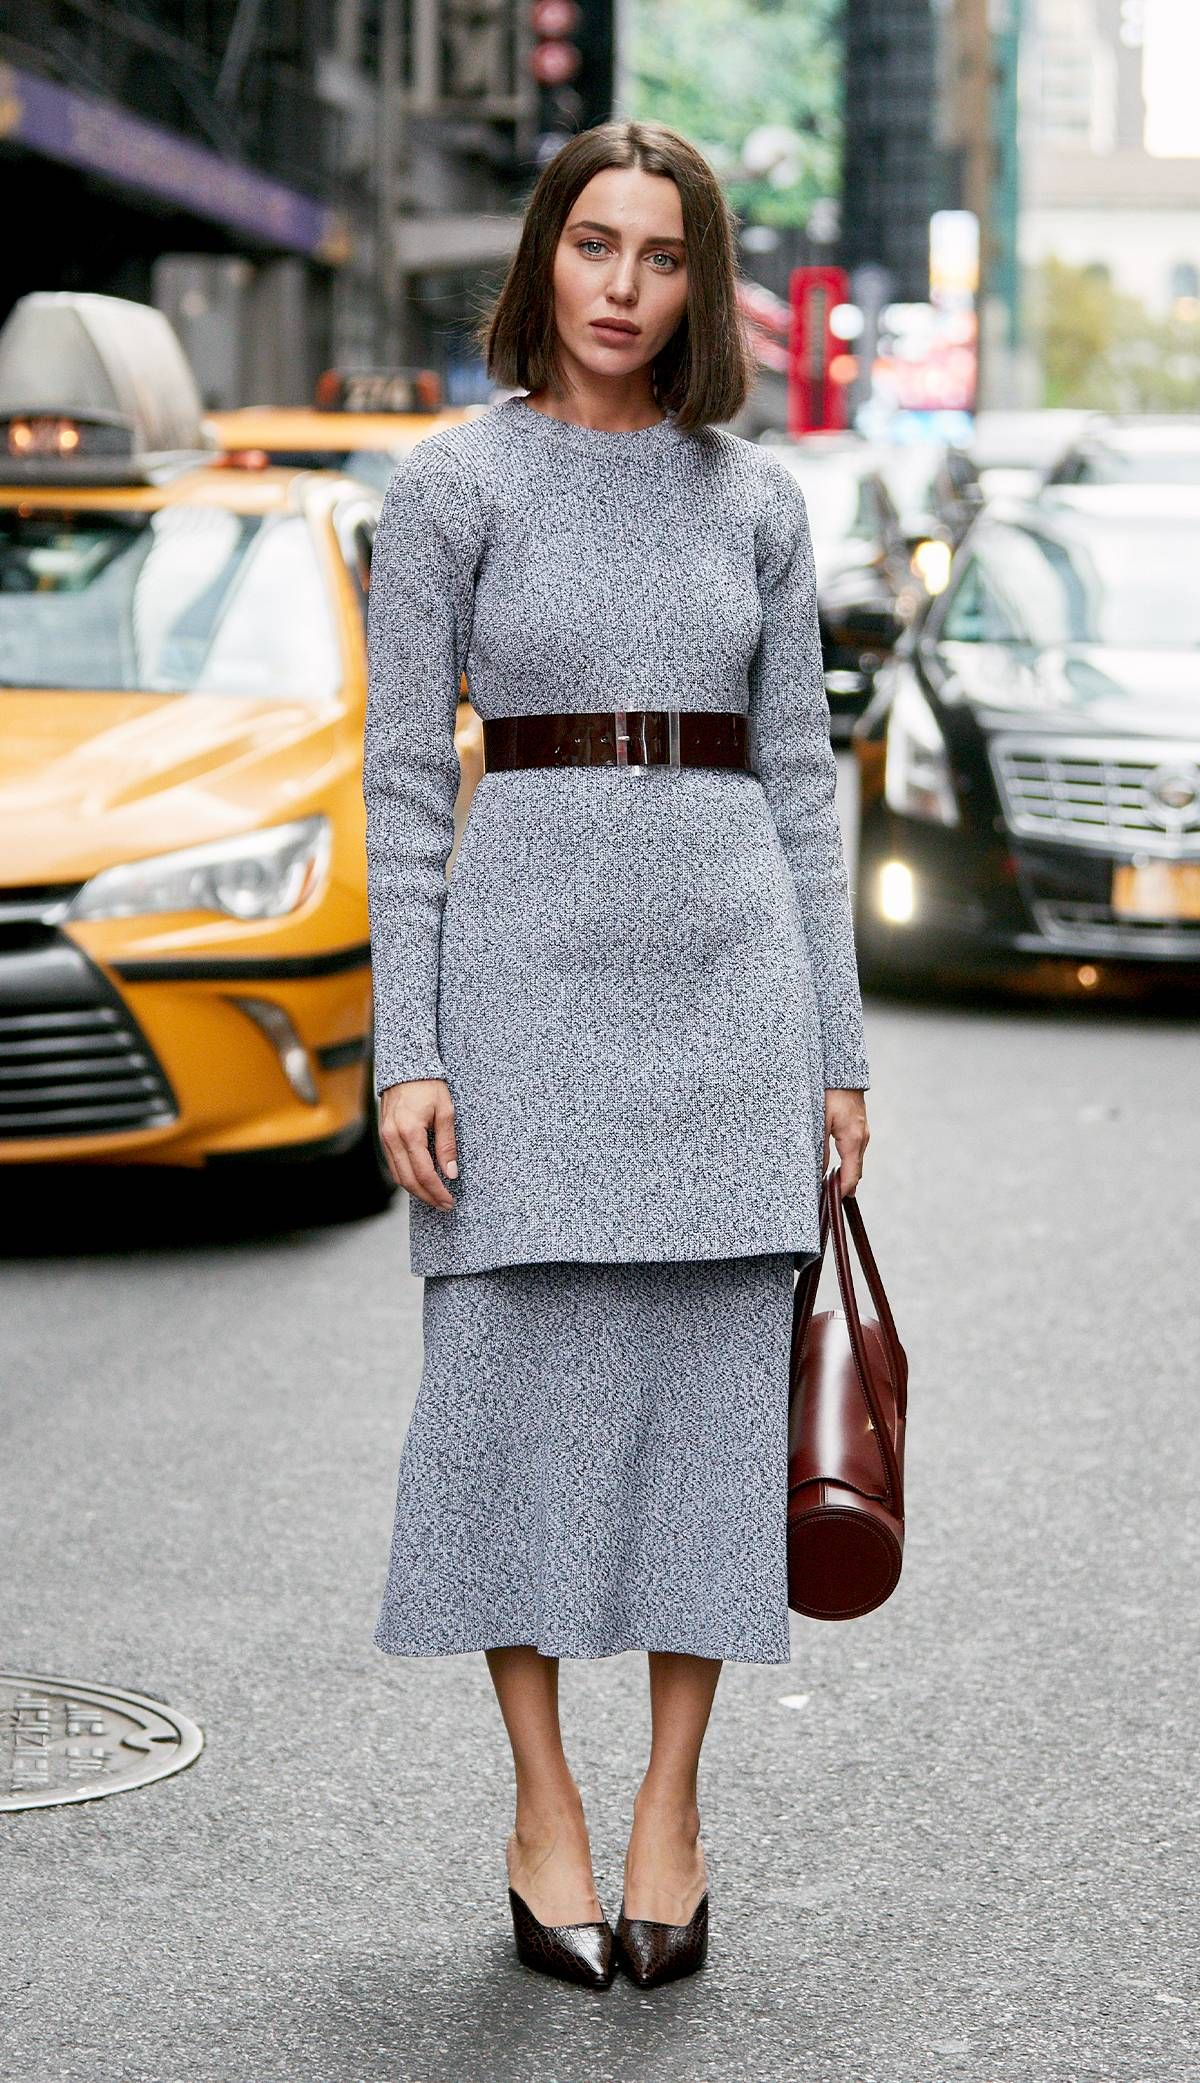 What I'm Buying to Dress Better This Fall #autumninnewyork